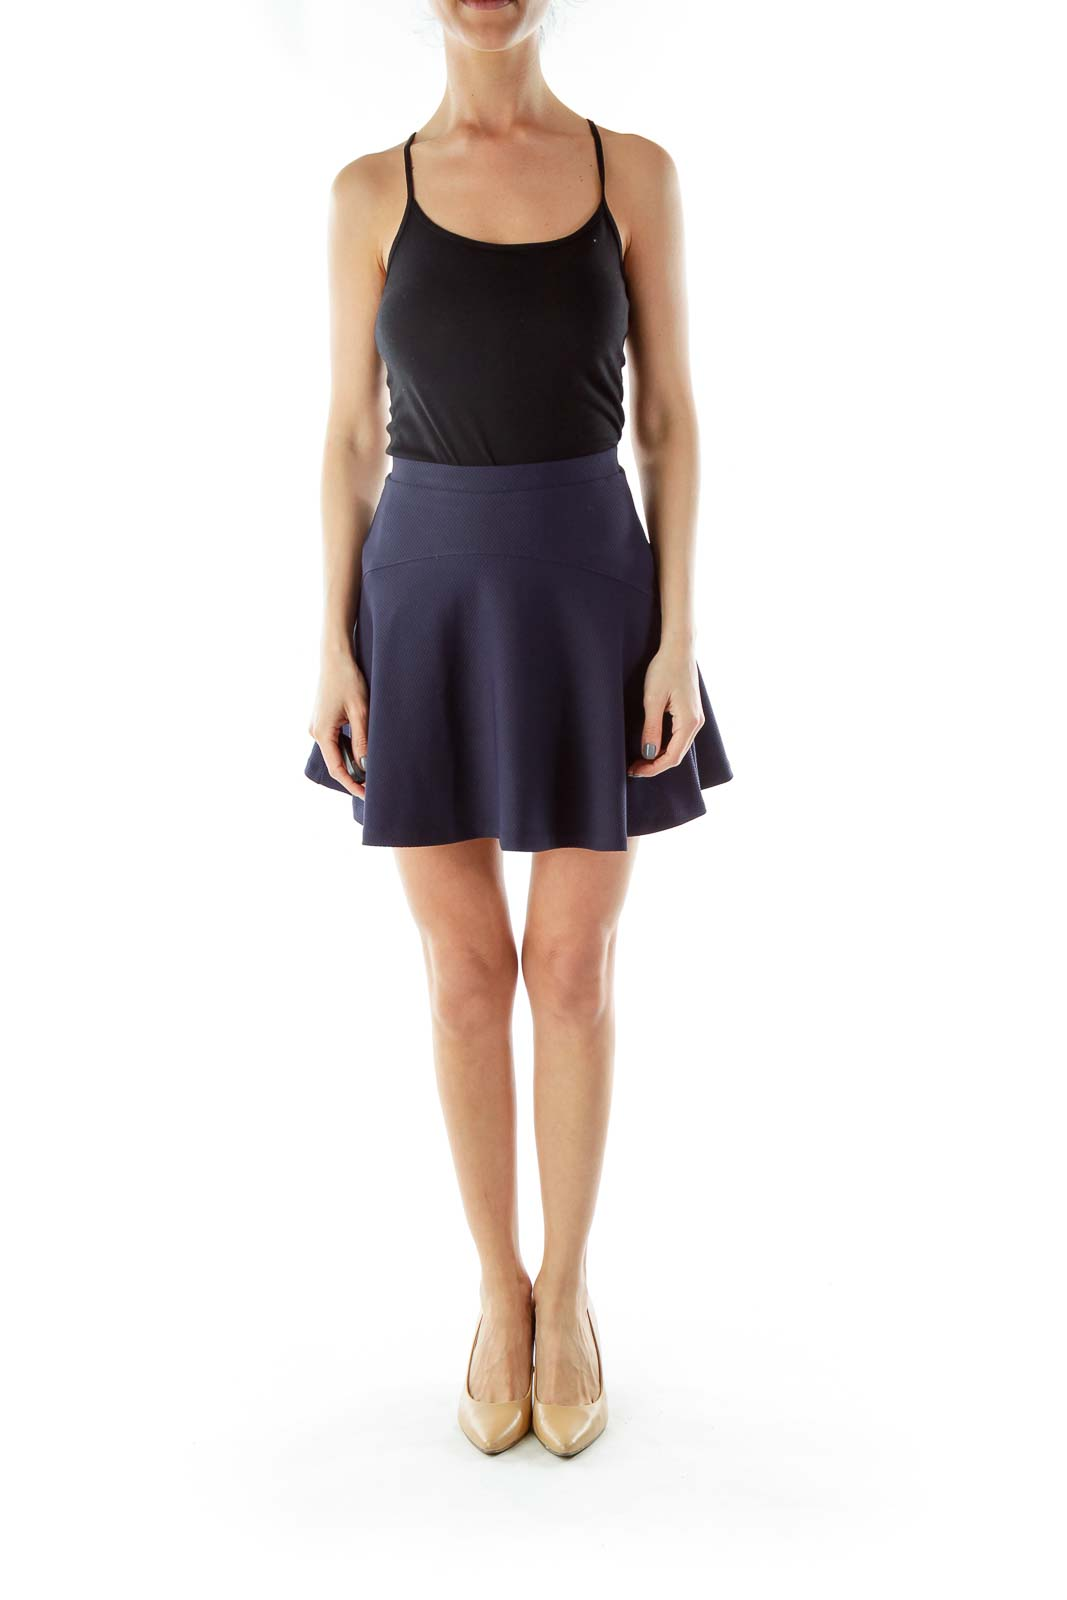 Black Flared Skirt with Hole Details